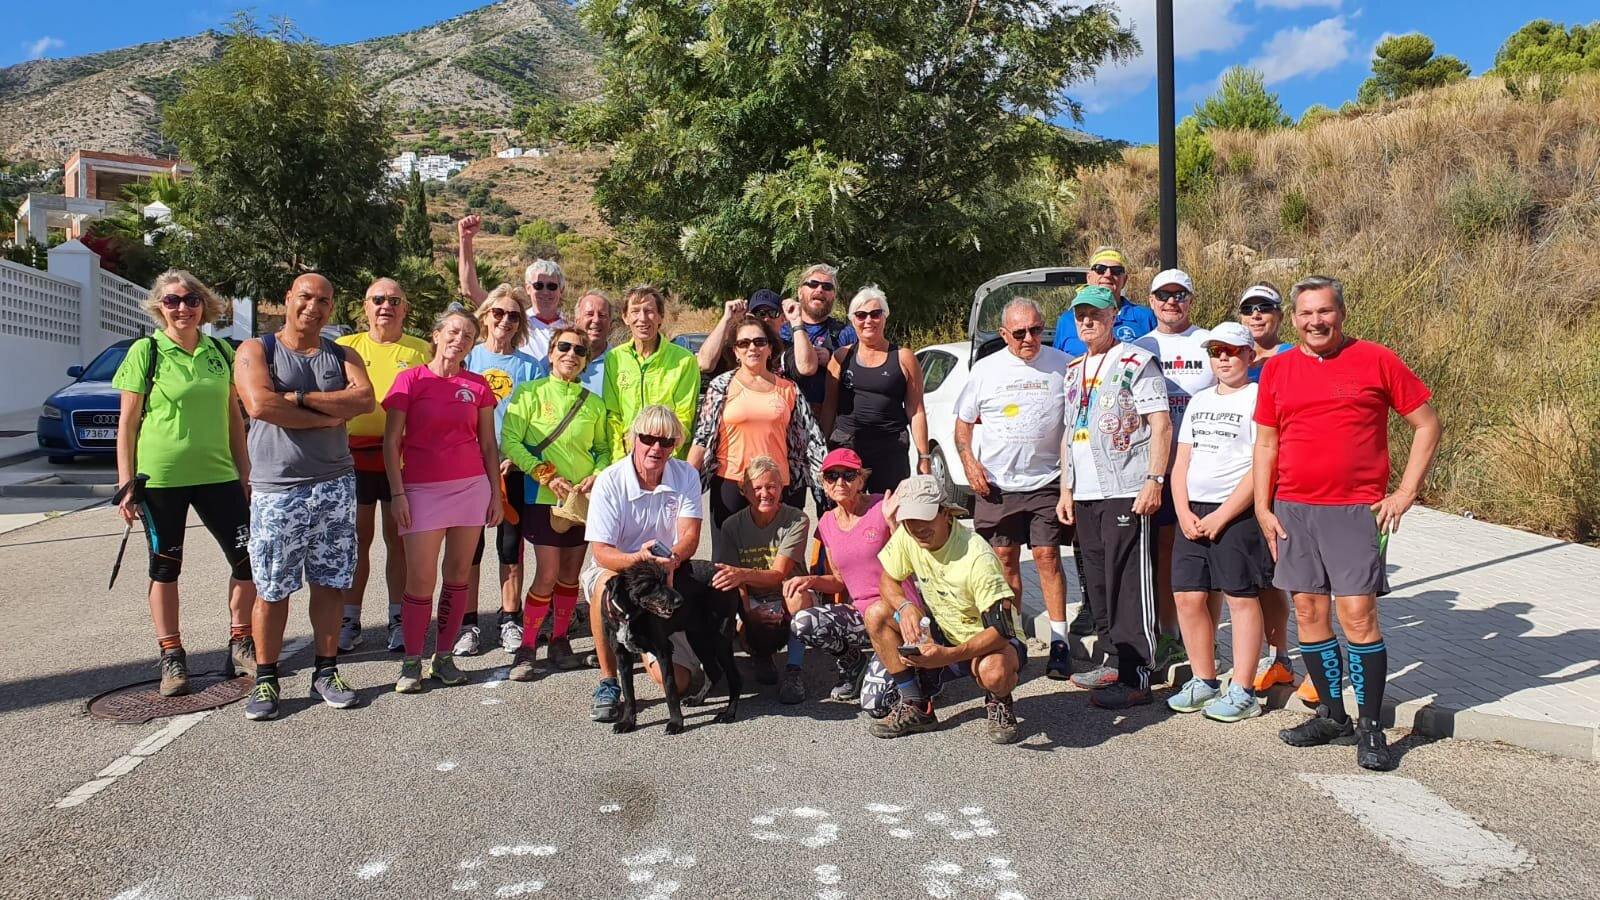 Mijas H3 - Hash Flash Golden Cascade - Run 1662 - 20 Oct 2019 - Photo  9.jpg